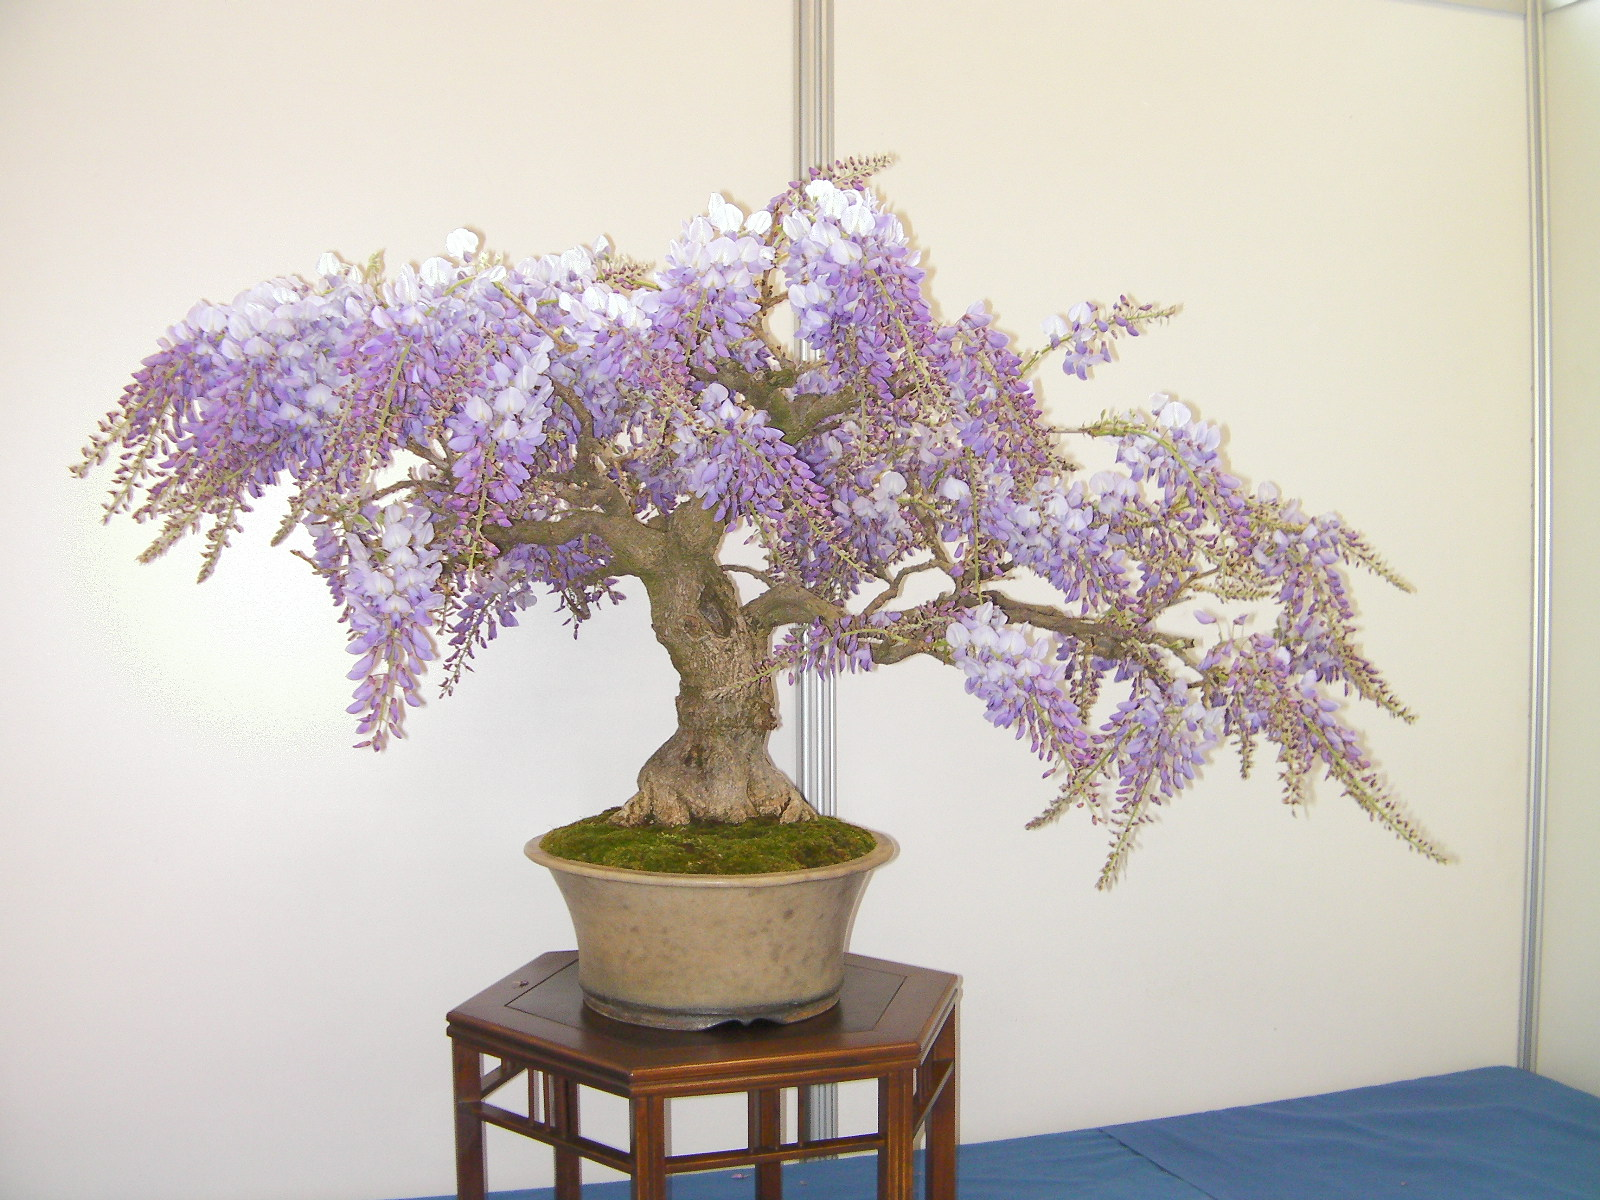 wisteria sinensis glycine de chine les chuhin et autres grands bonsa forums parlons bonsai. Black Bedroom Furniture Sets. Home Design Ideas